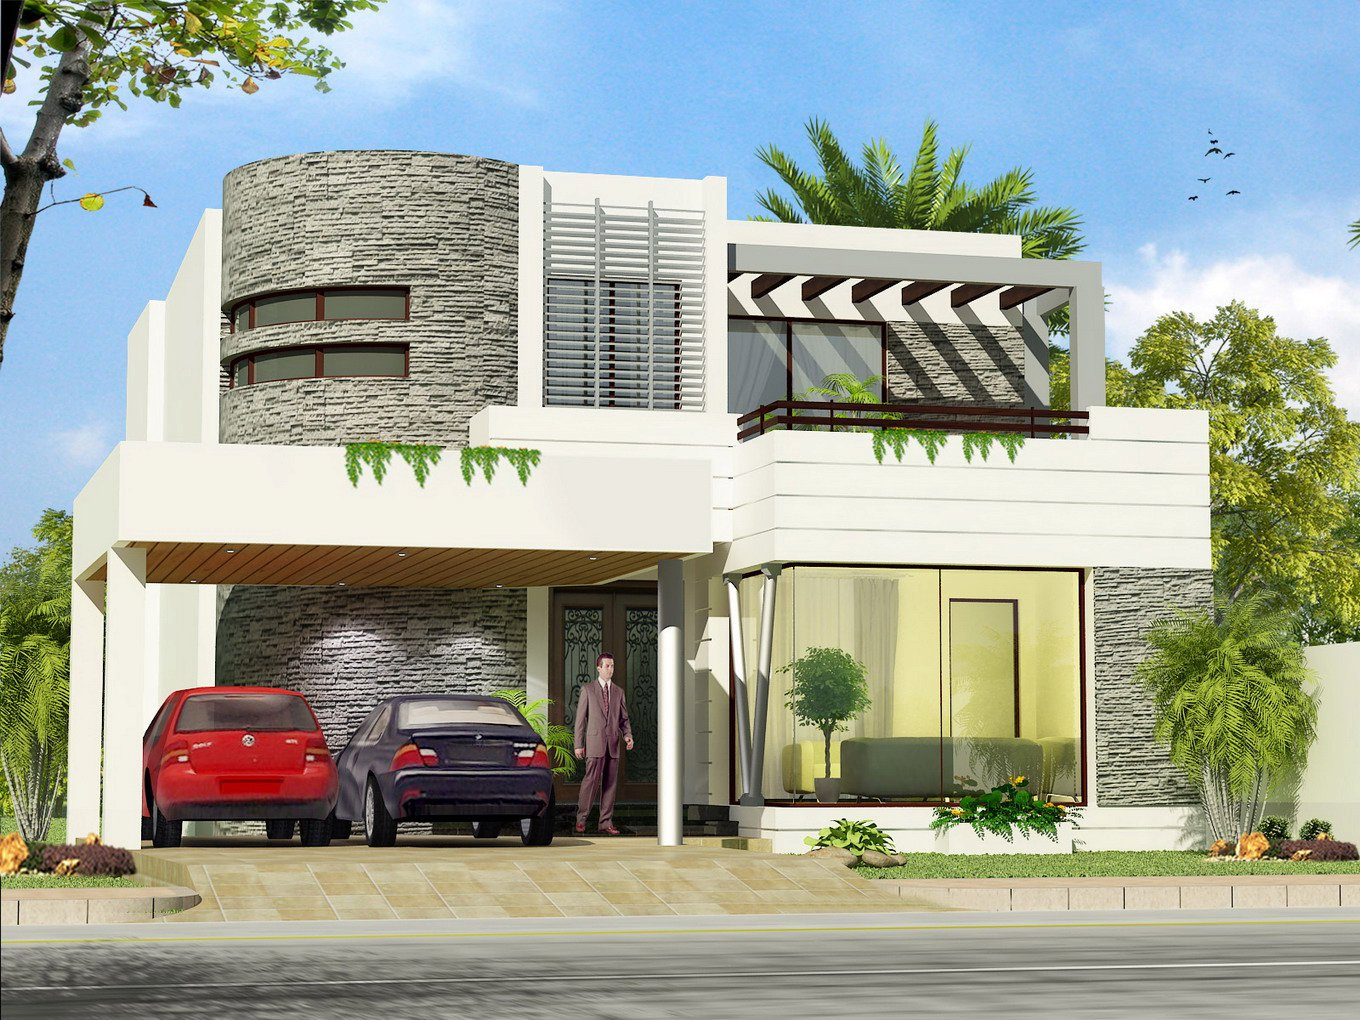 New home designs latest modern homes beautiful latest for Latest house designs photos